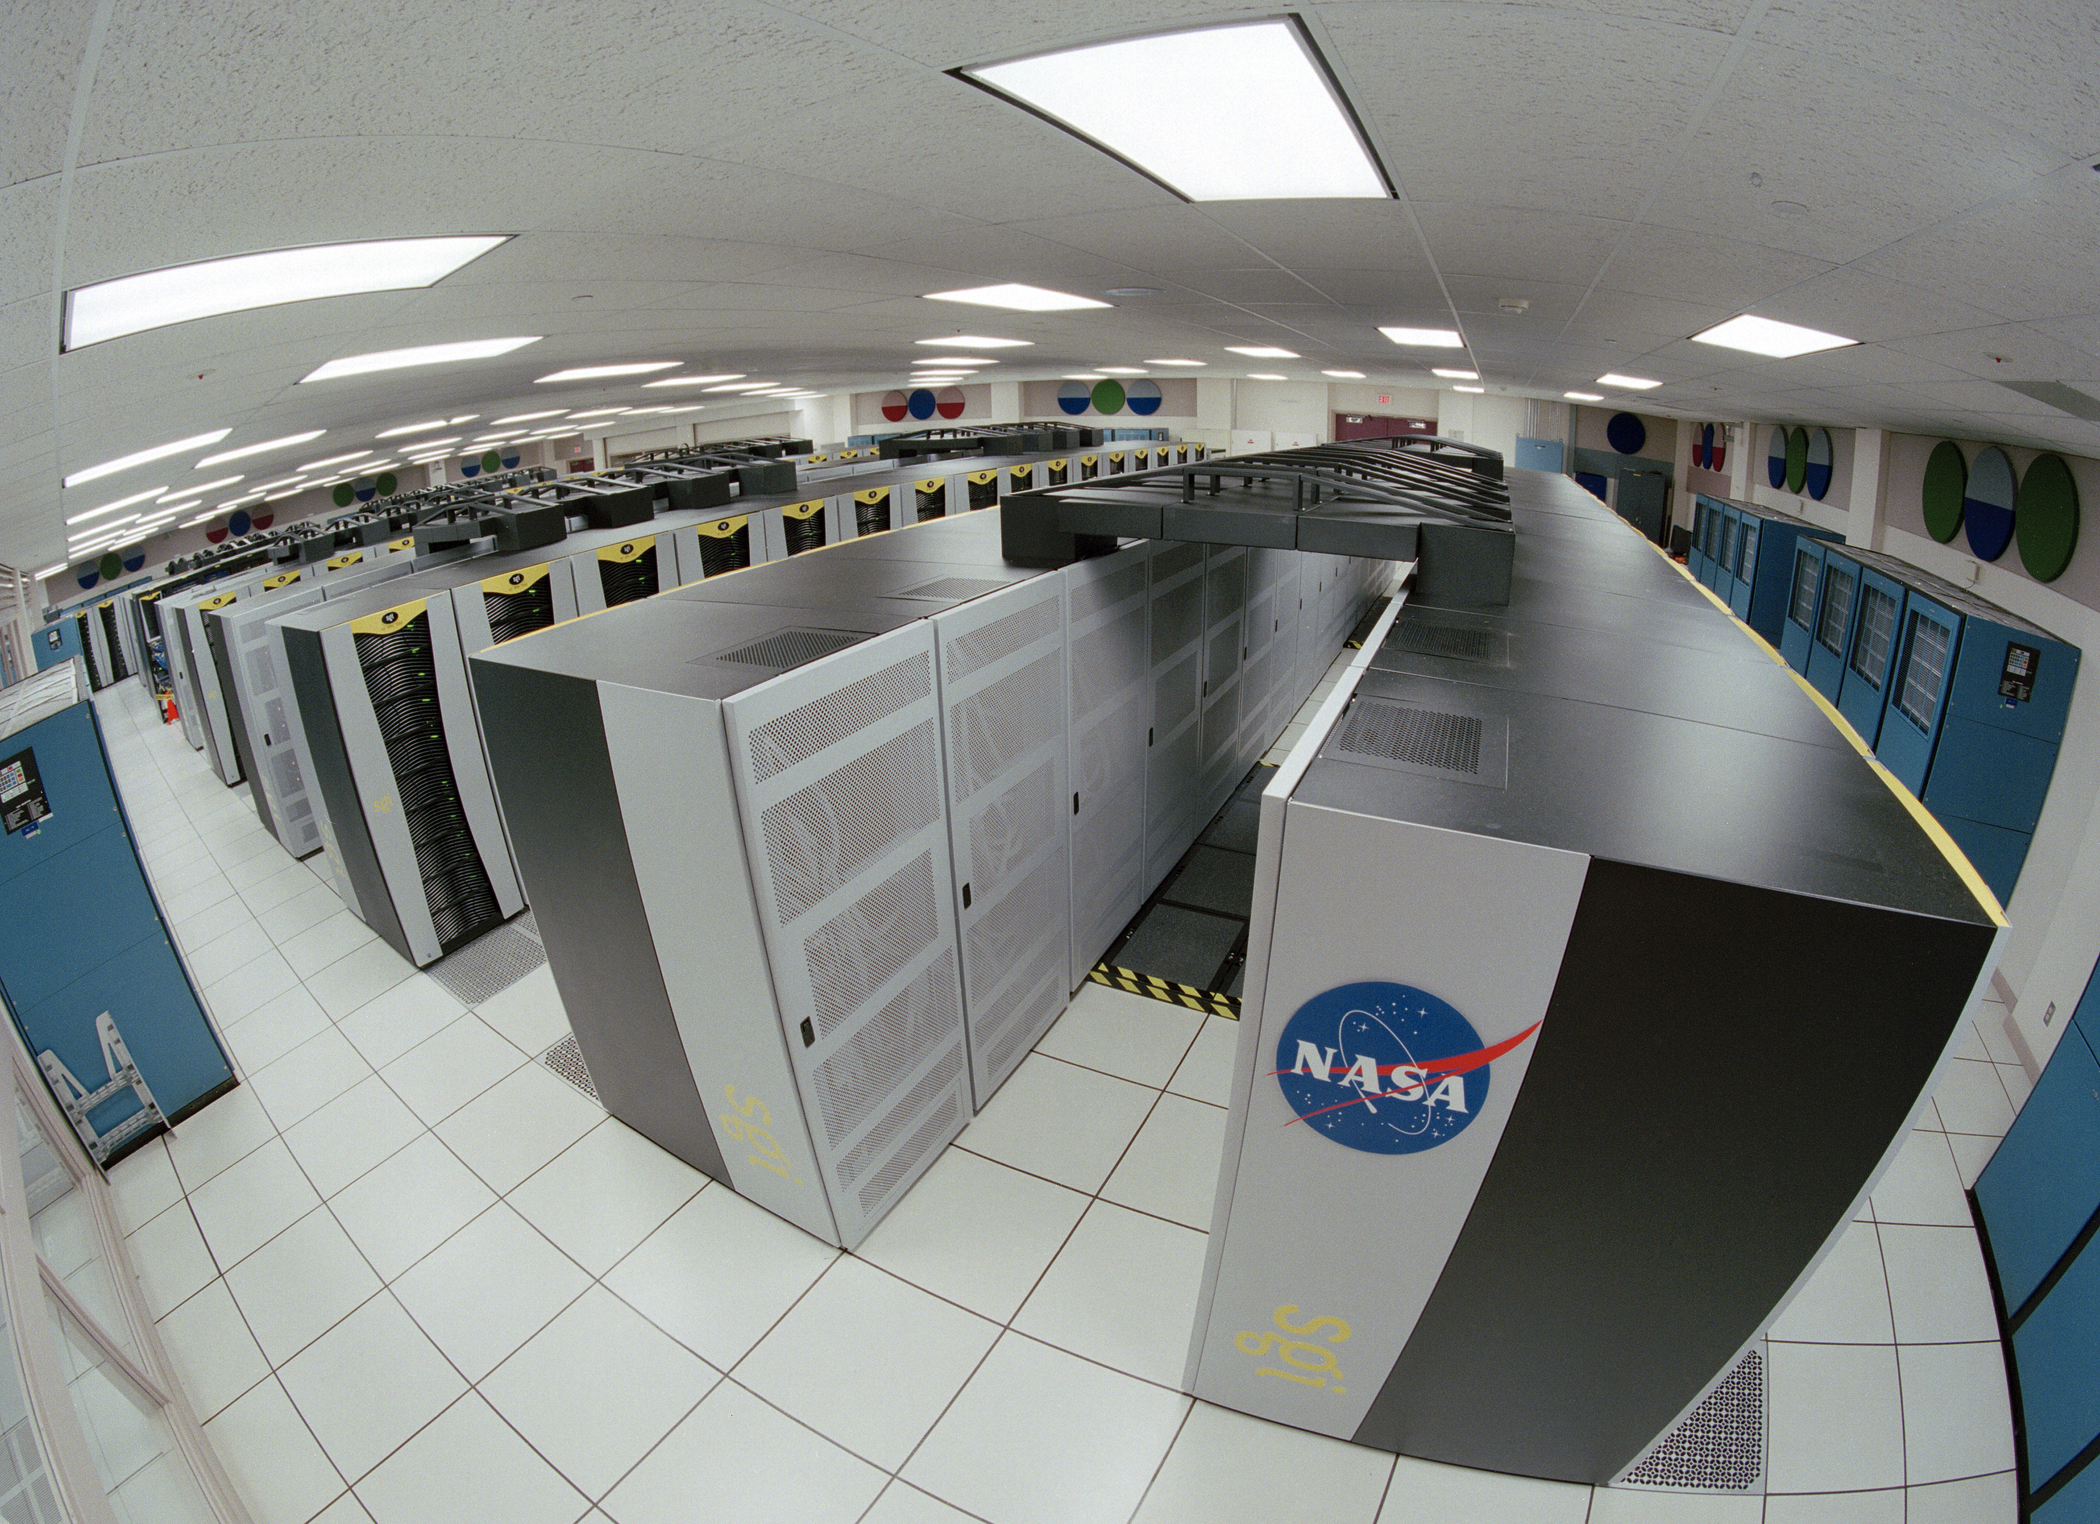 external image Columbia_Supercomputer_-_NASA_Advanced_Supercomputing_Facility.jpg